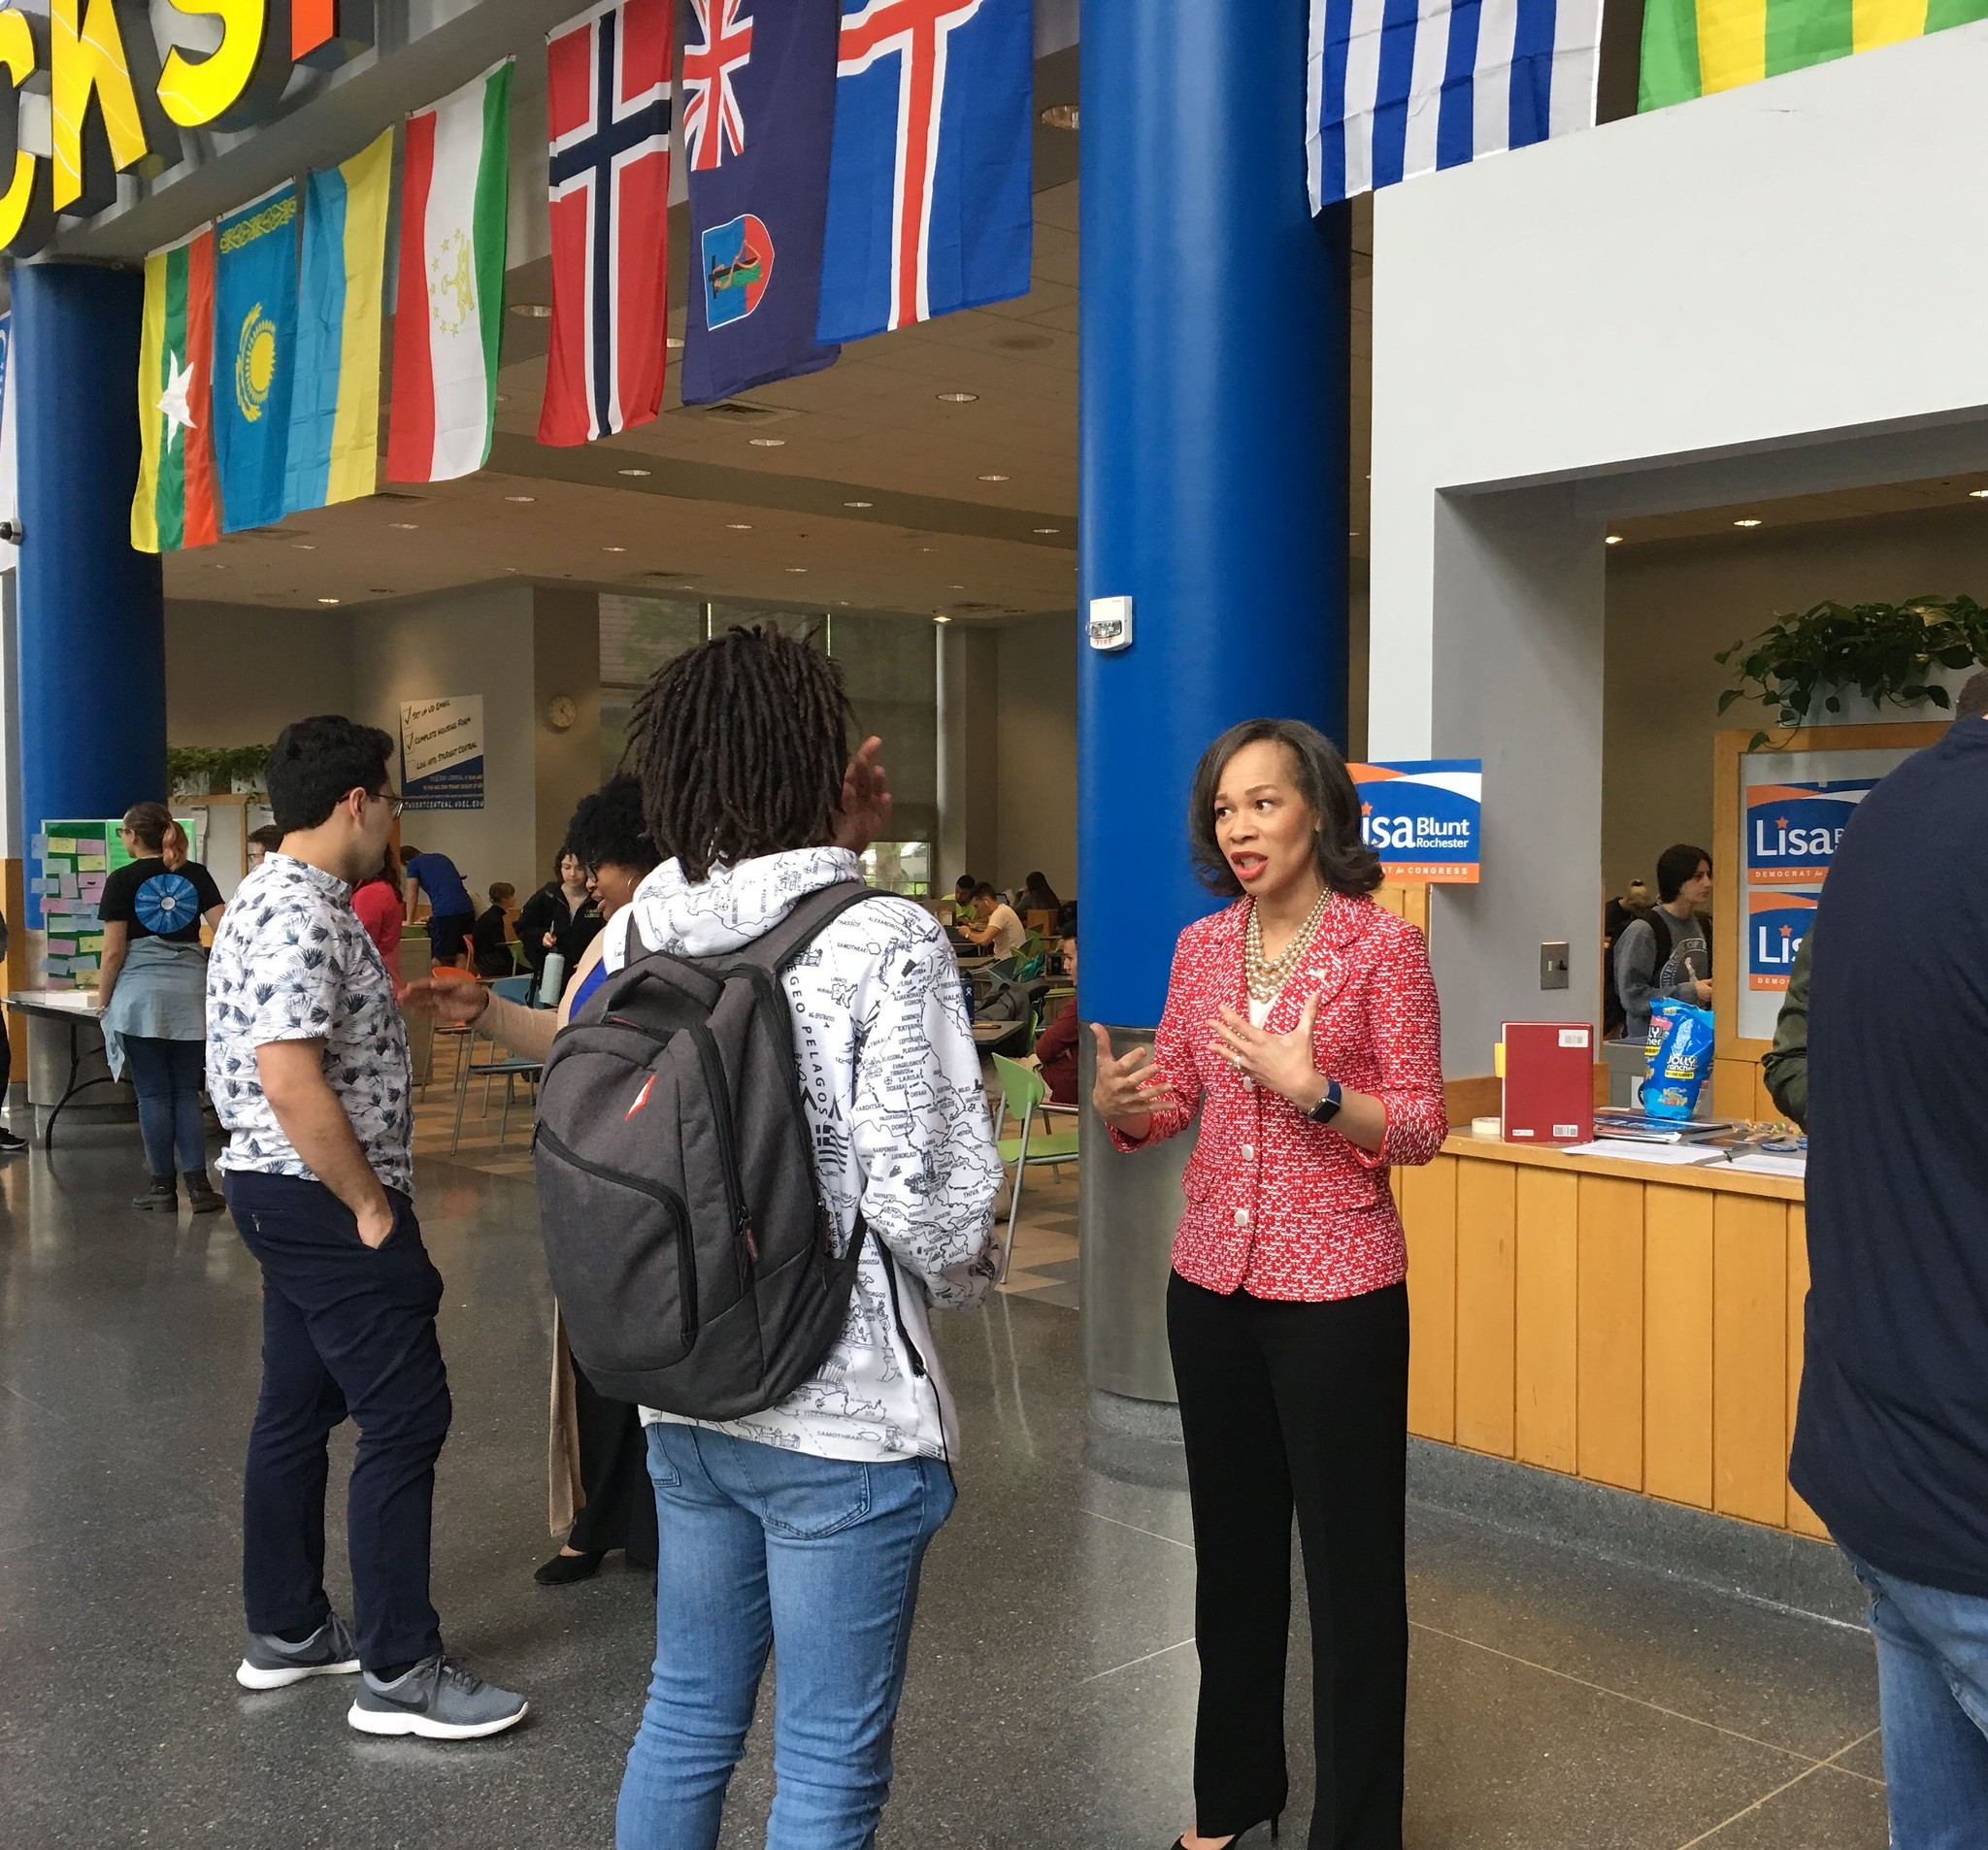 Lisa Blunt Rochester talks to students in Trabant, discusses Biden endorsement